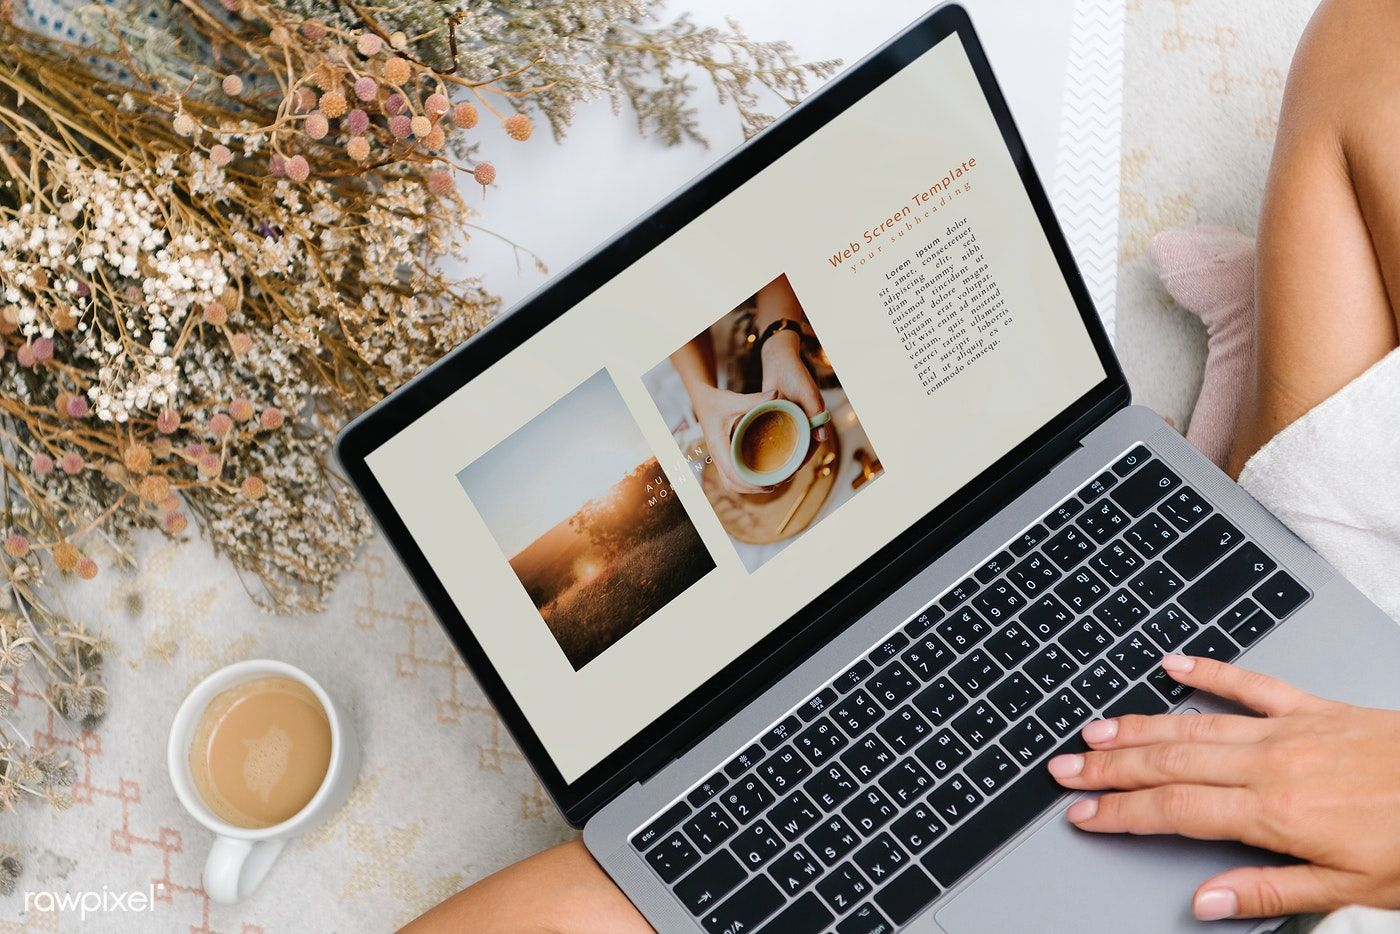 Best Laptop for College And Photography